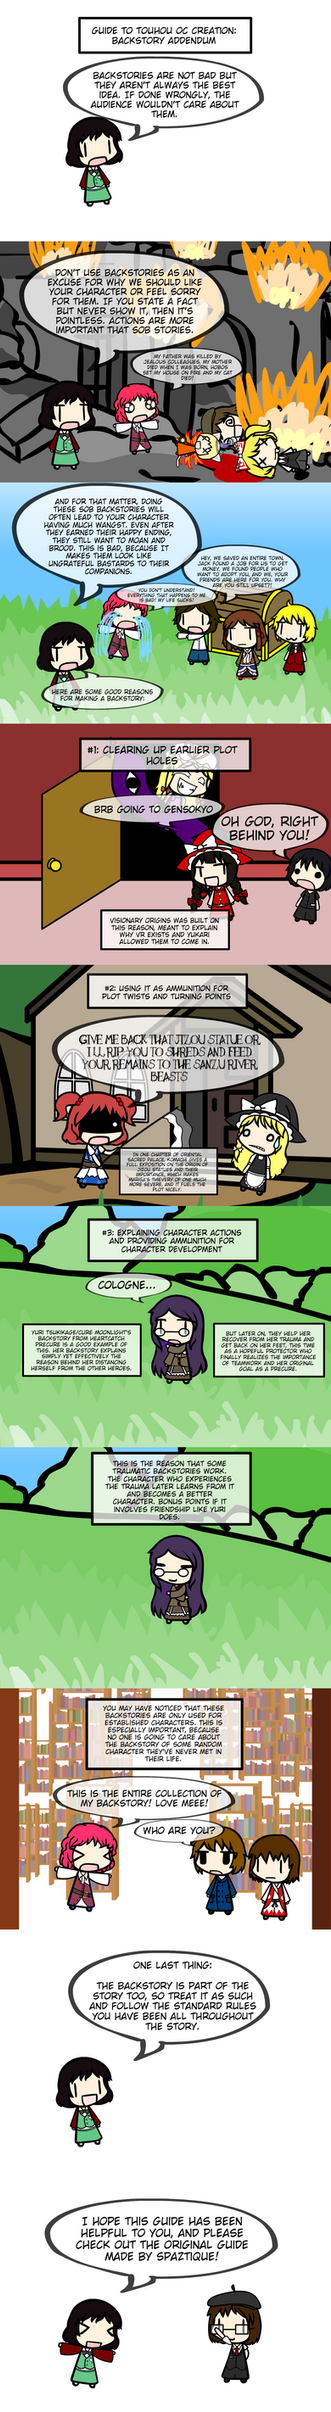 Guide to Touhou OC Creation: Backstory ADDENDUM by Kigurou-Enkou